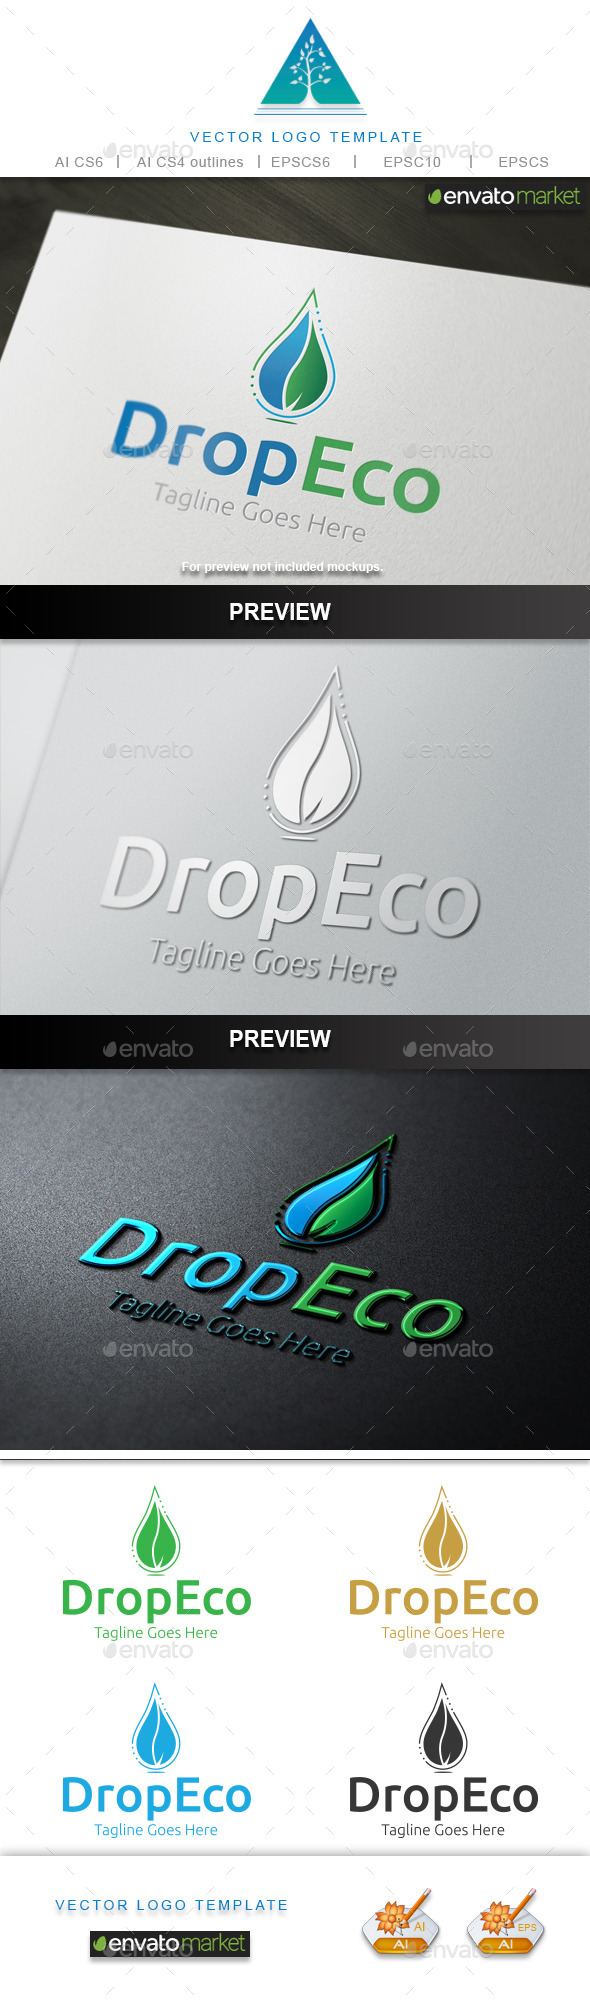 Drop Eco Logo